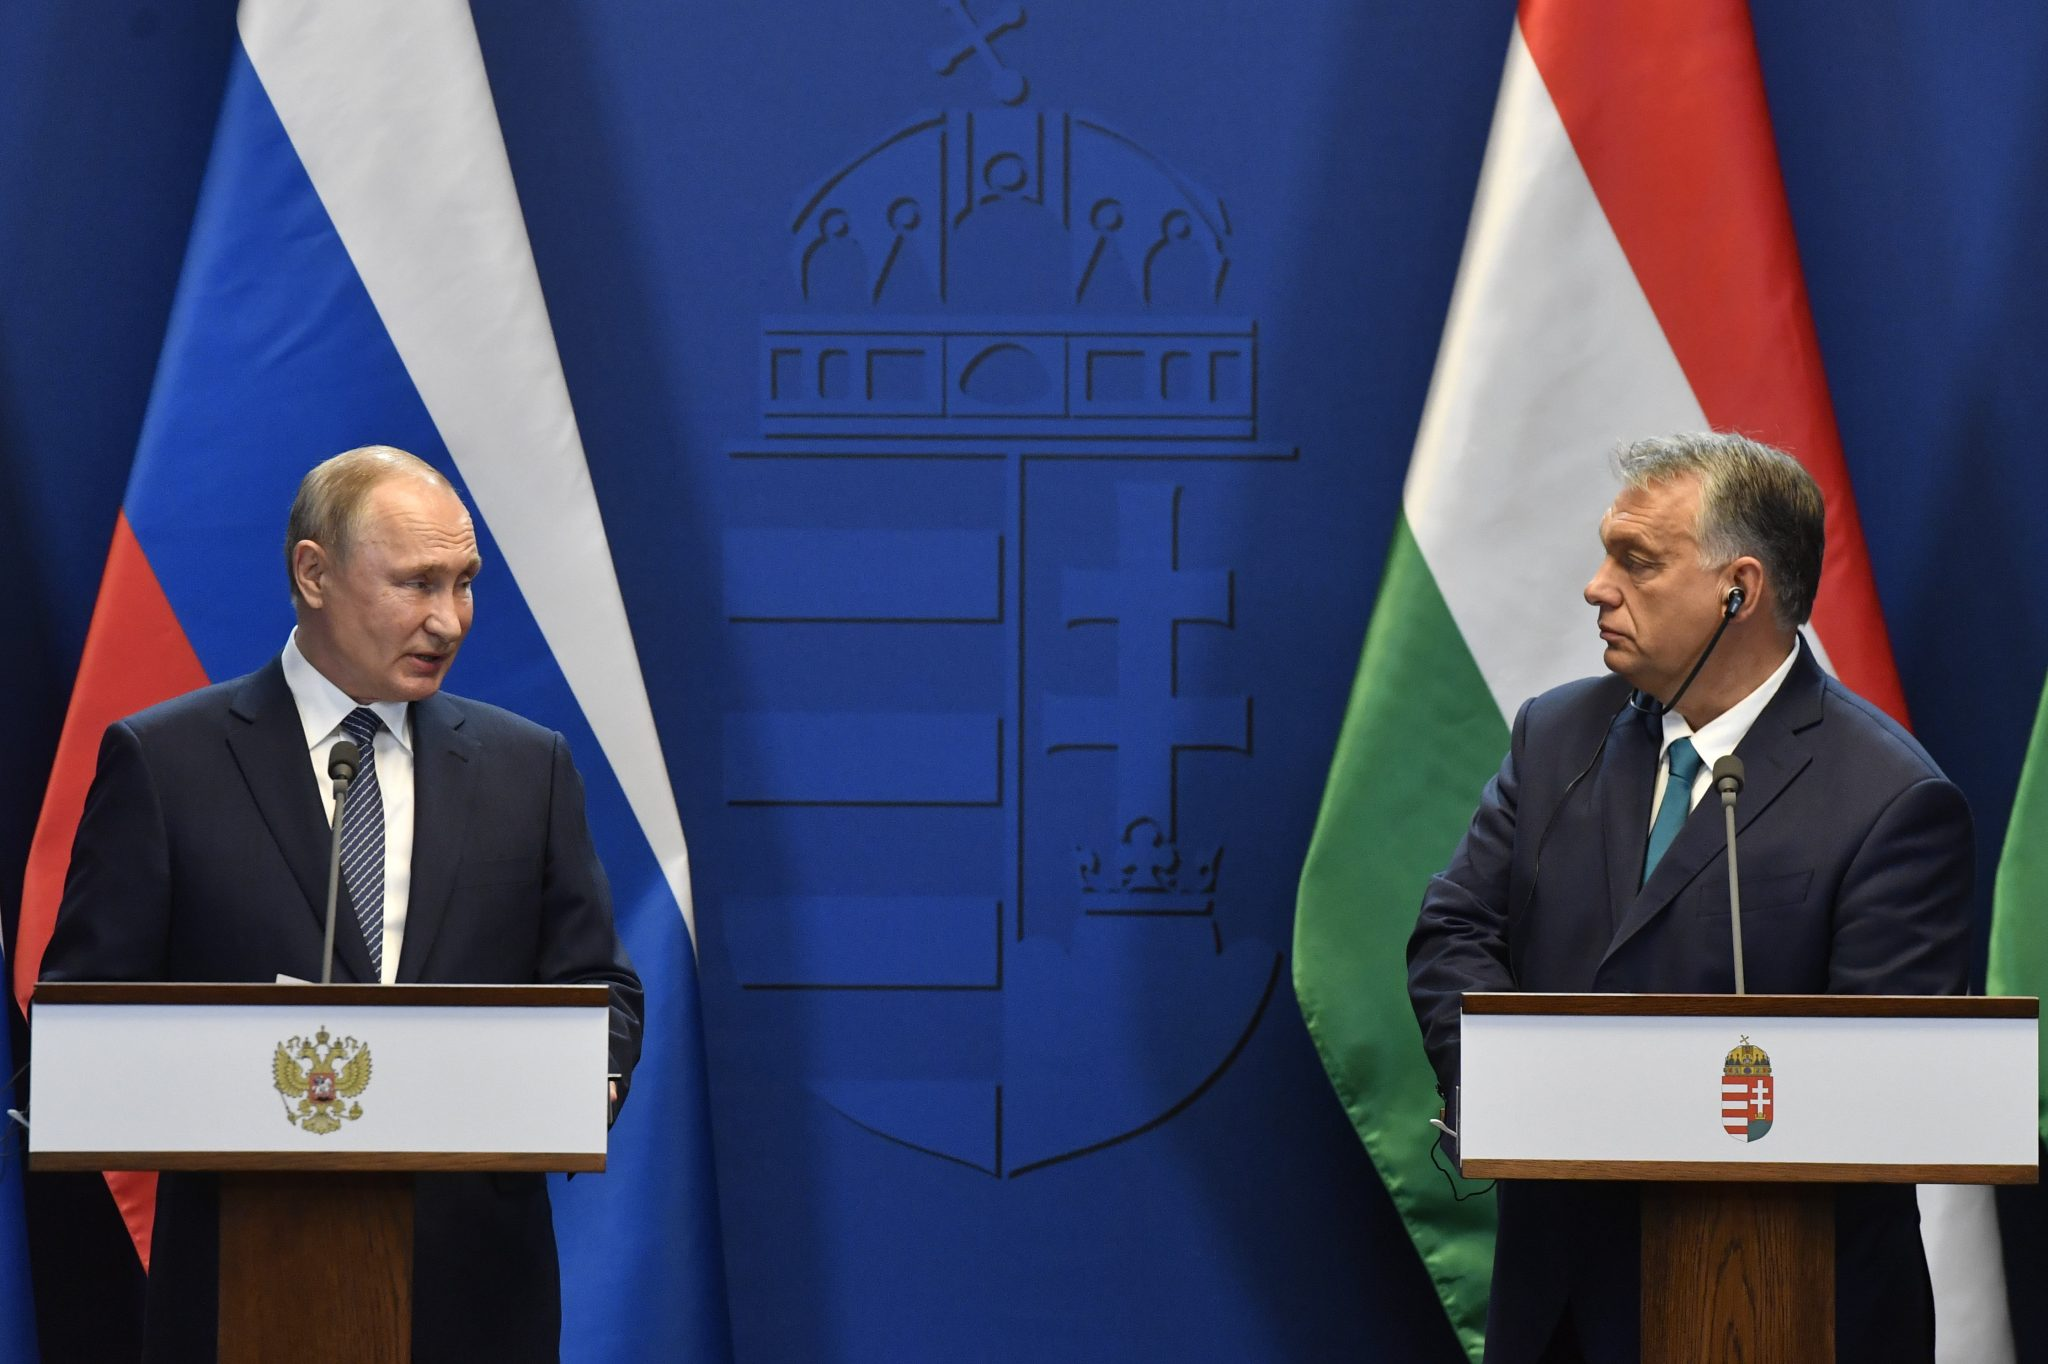 PMO Head on Russia Ties: Hungary Entirely Dependent on Russian Gas post's picture